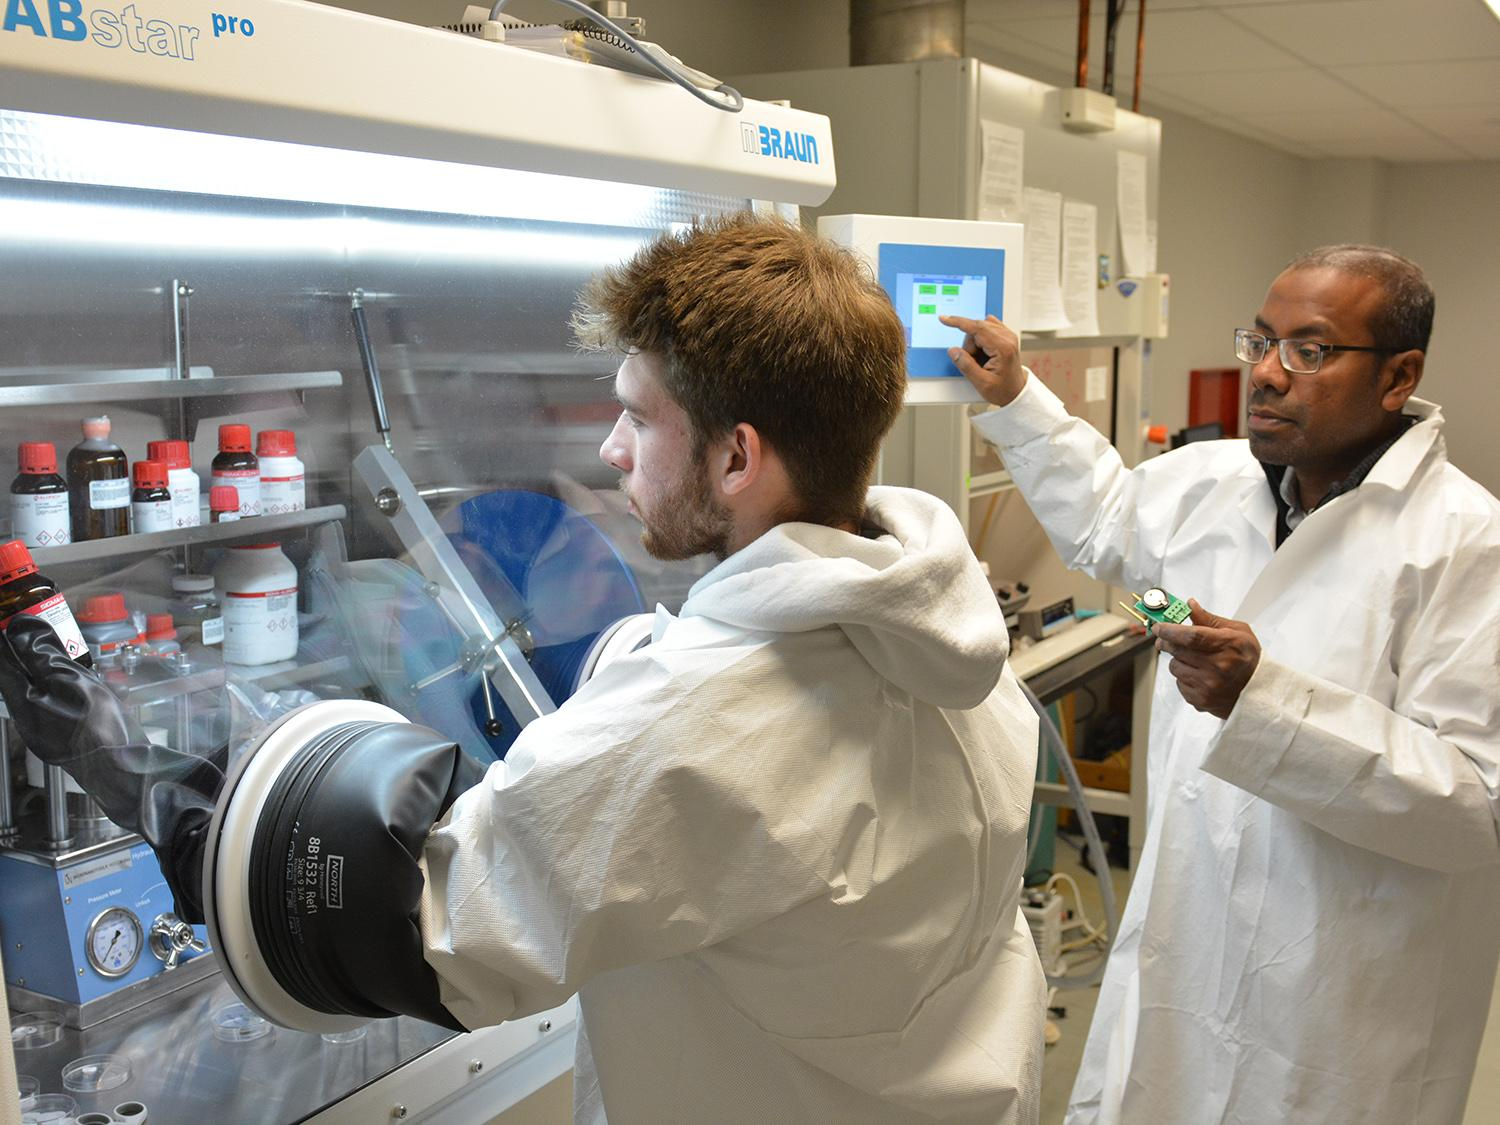 Student Josh Willson and faculty member Dr. Mohammad Islam work in a lab